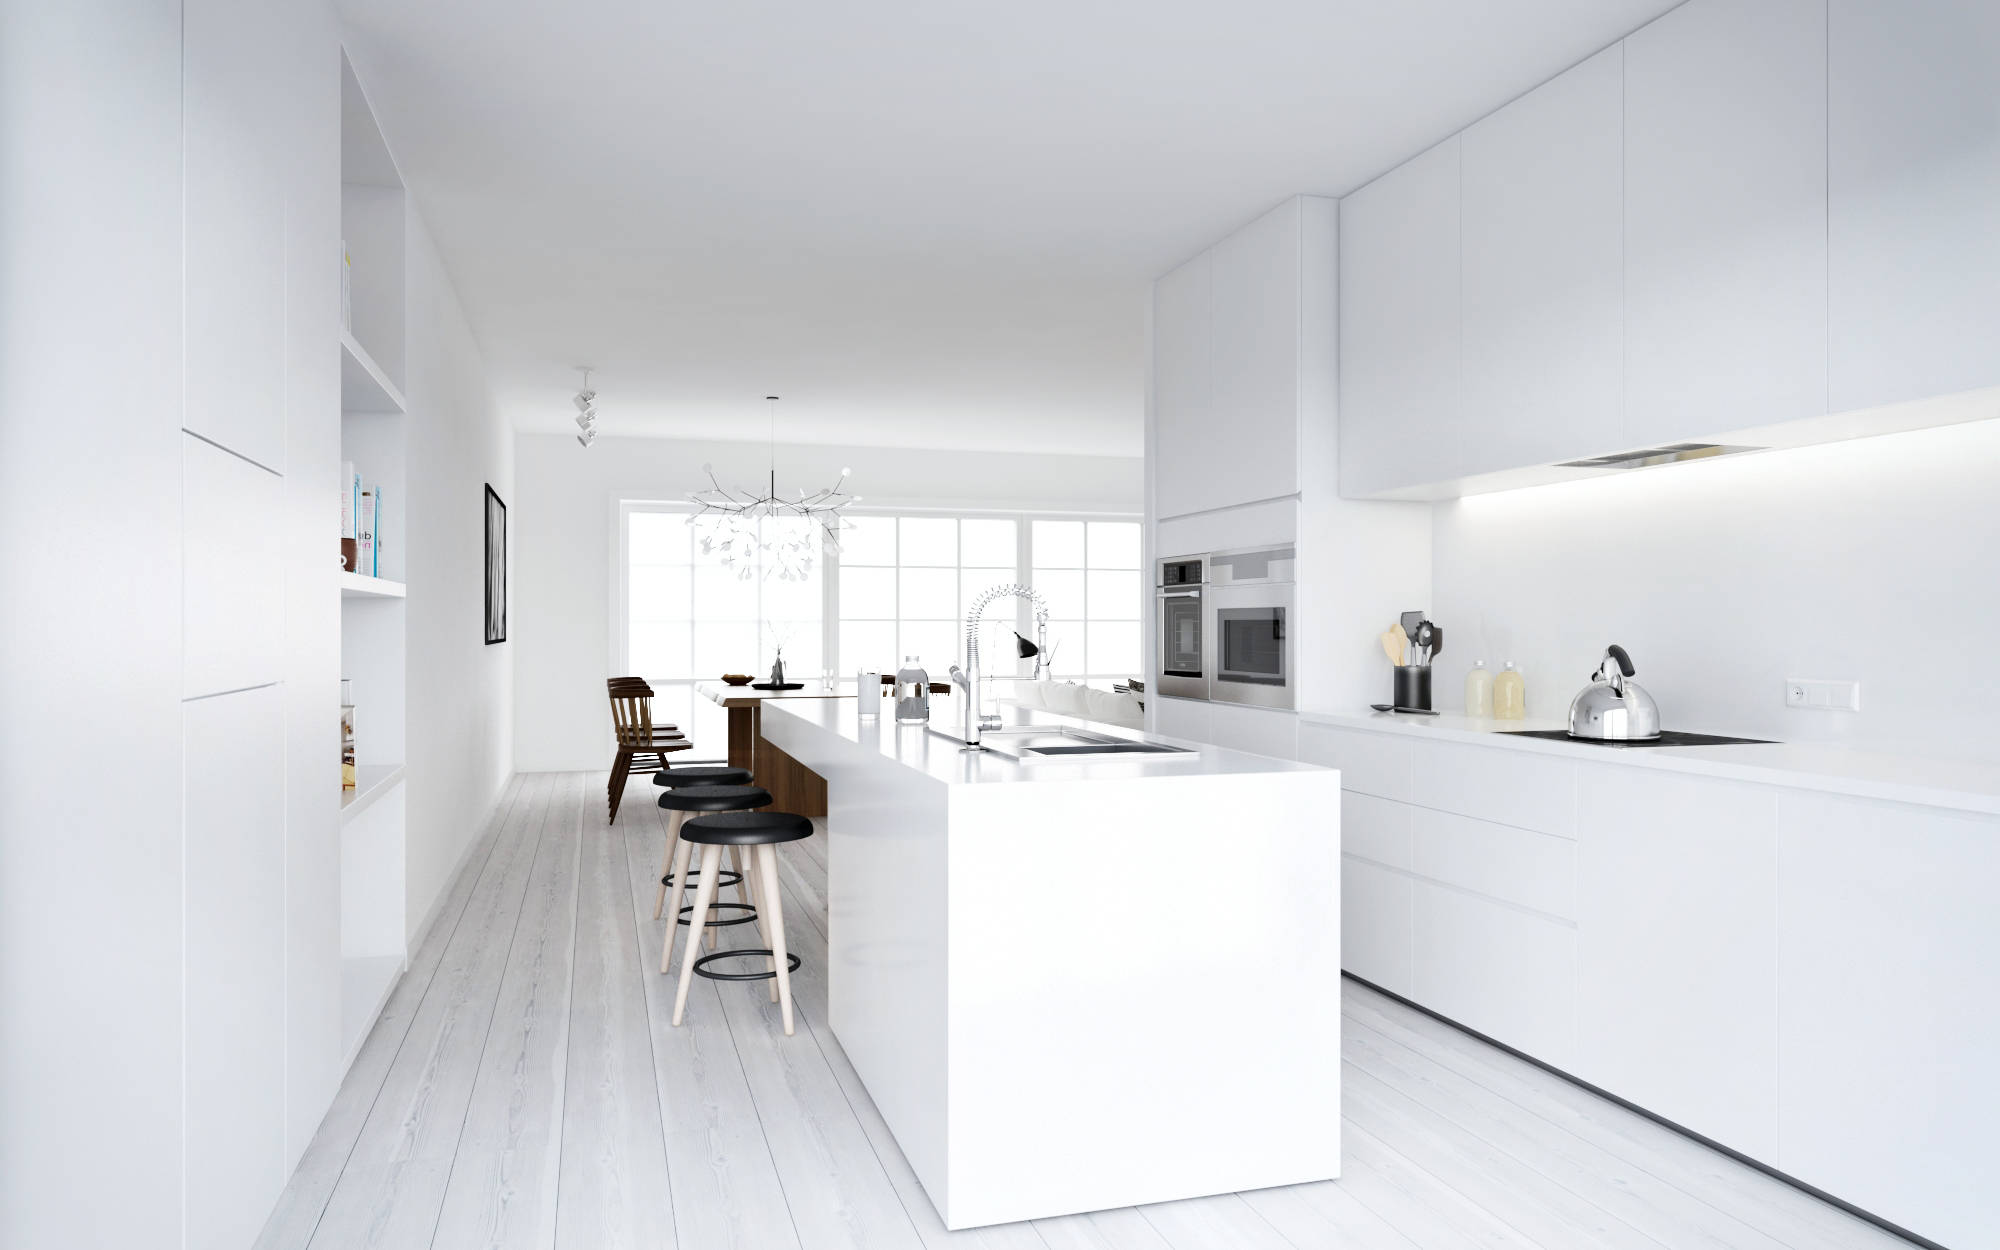 Atdesign Nordic Style Minimalist Kitchen In White Interior Design Ideas